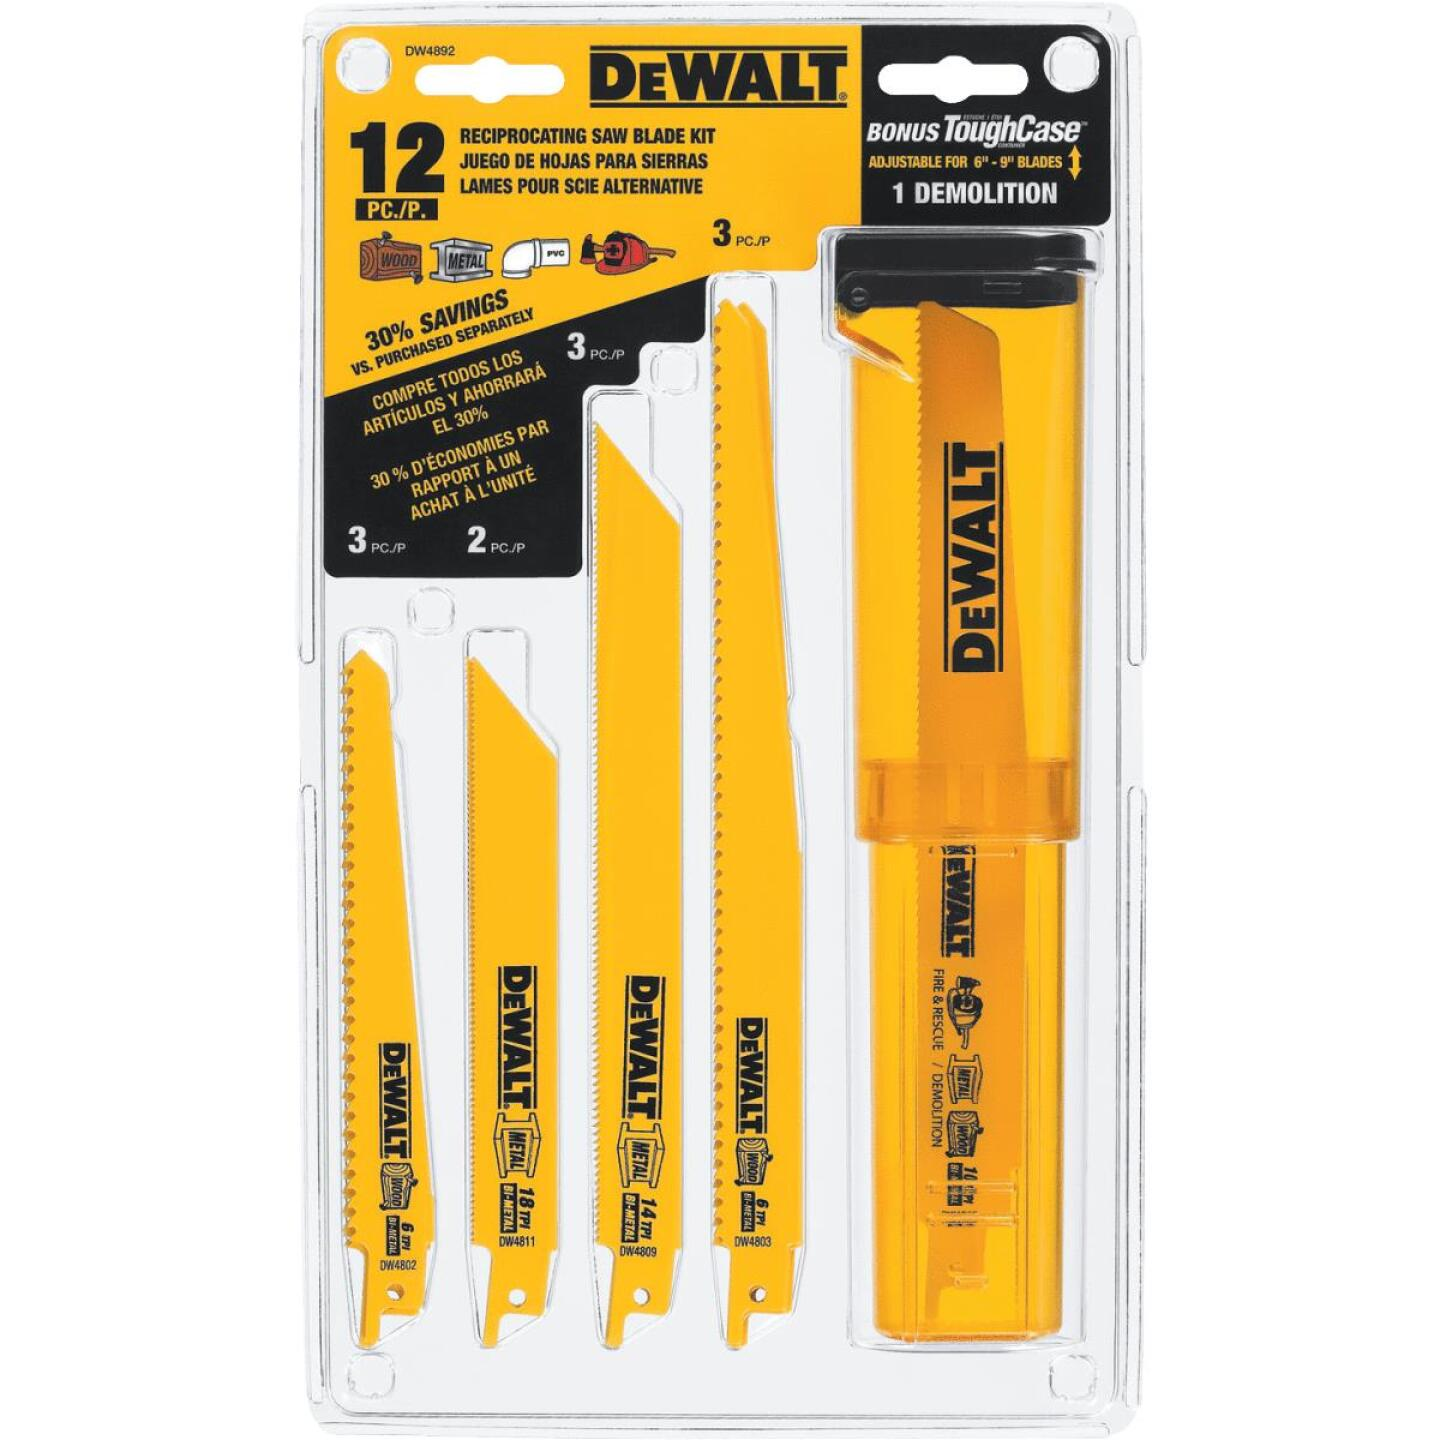 DeWalt 12-Piece Reciprocating Saw Blade Set Image 3